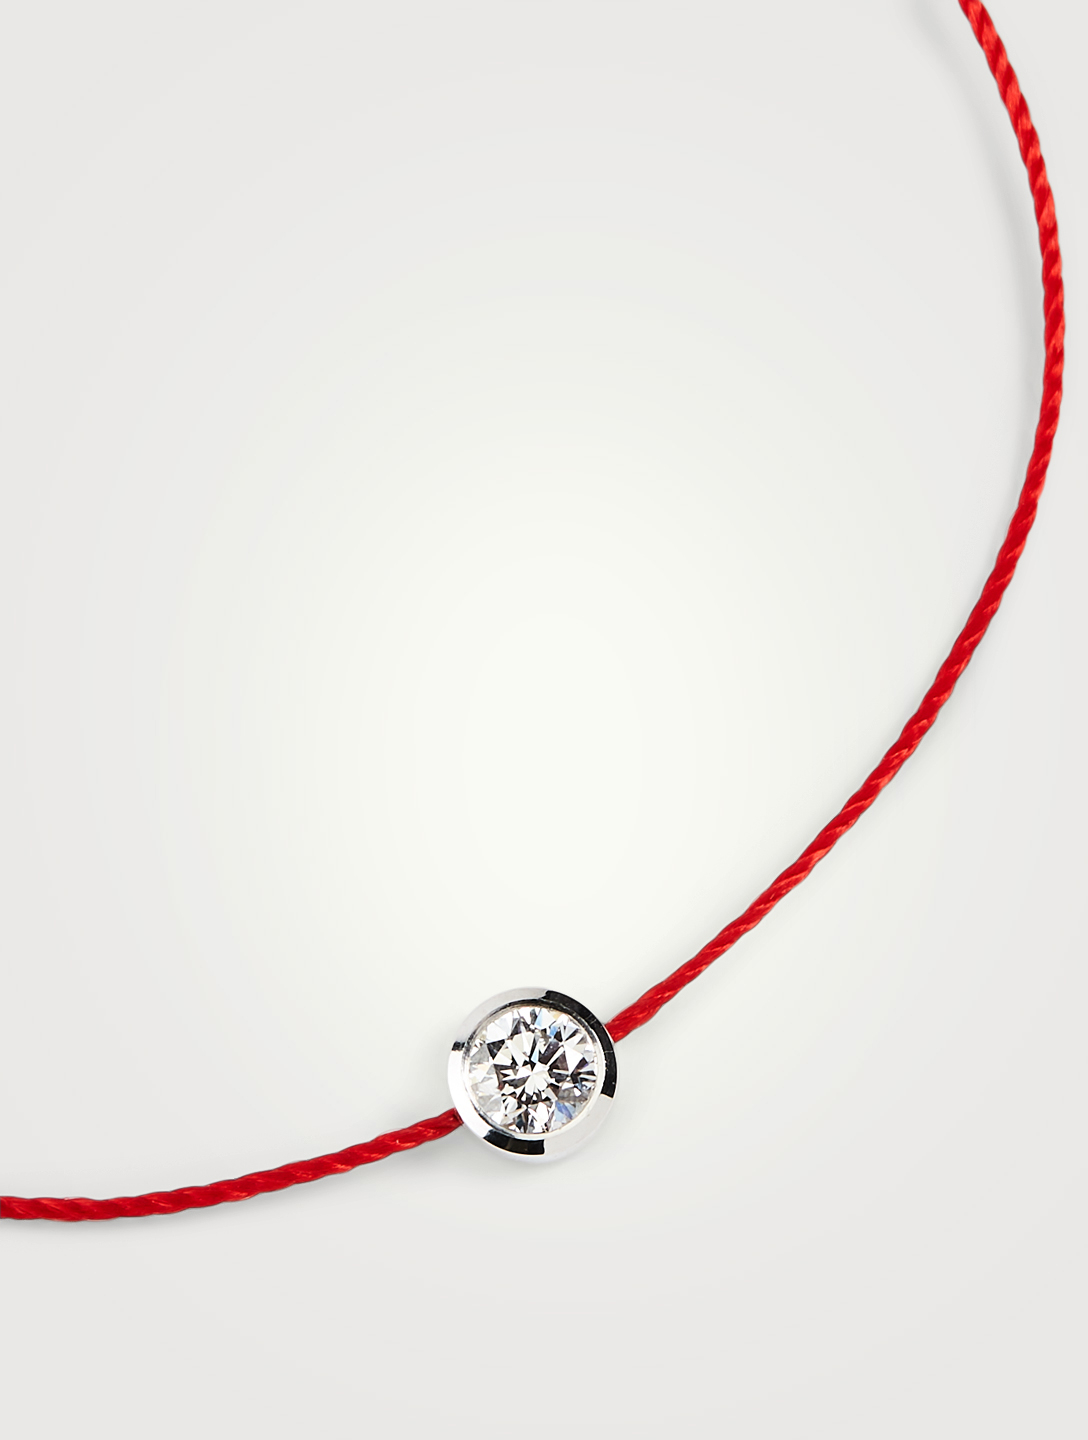 REDLINE So Pure 18K White Gold String Bracelet With Diamond Women's Metallic